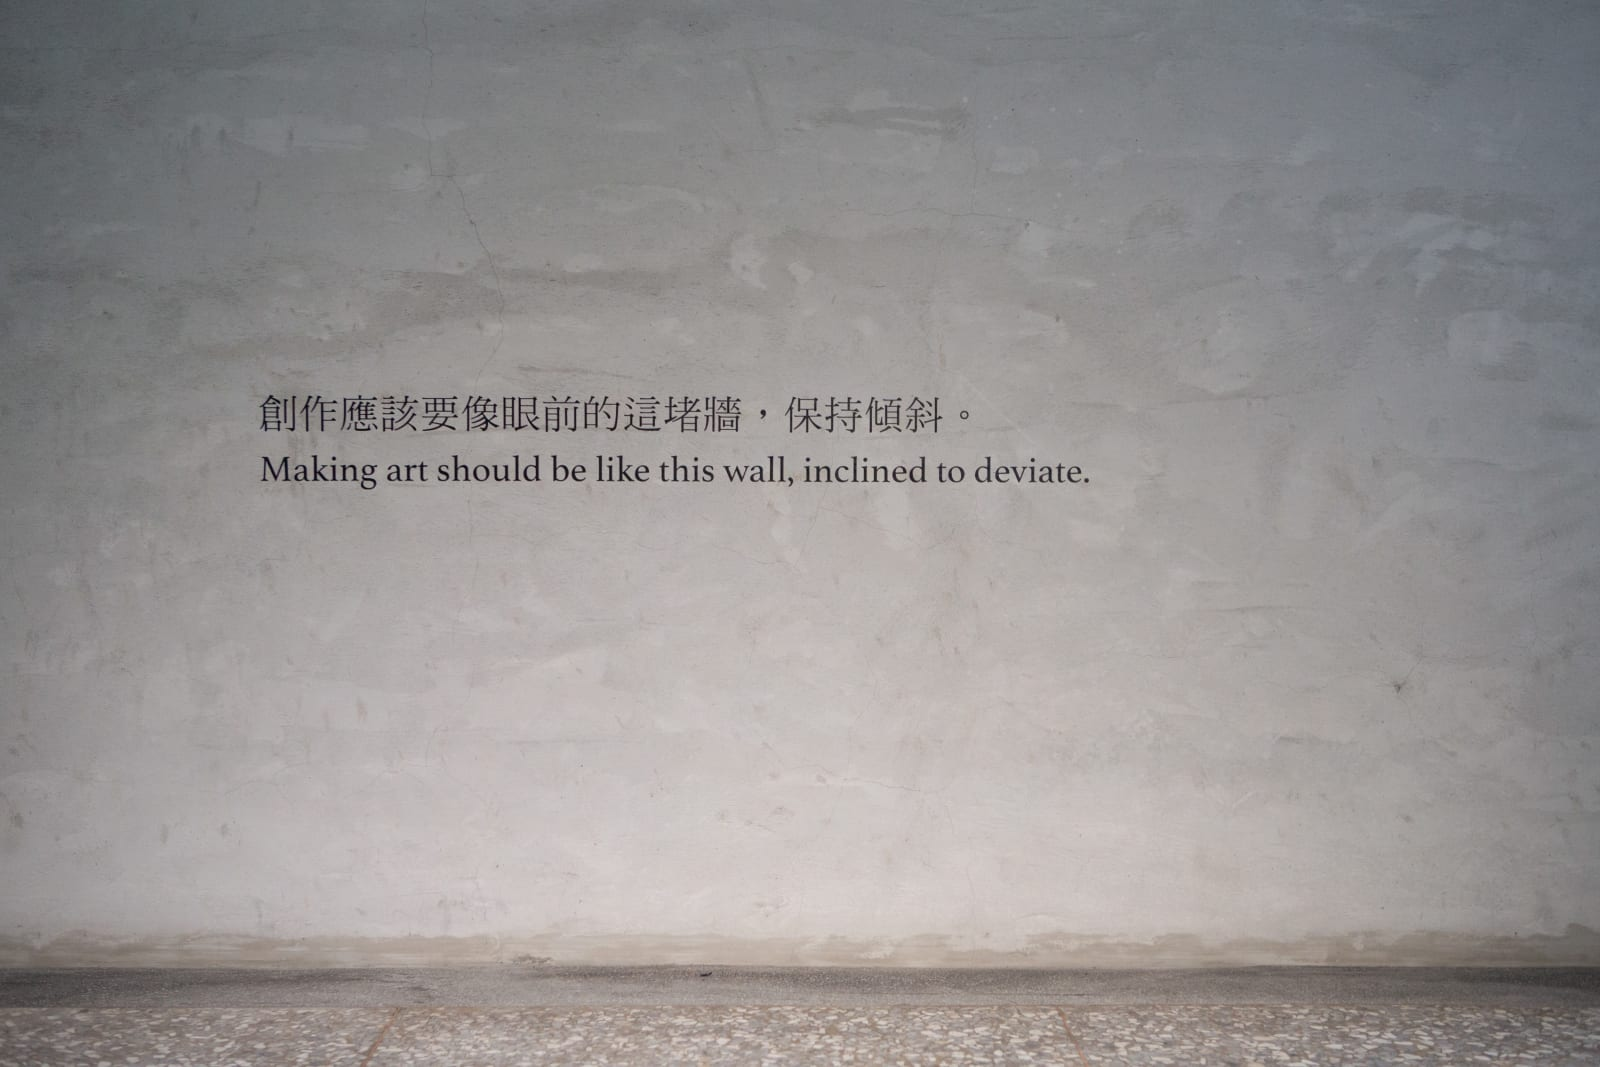 Lai Chih-Sheng 賴志盛 Learning from a wall 《向一堵牆學習》 2020